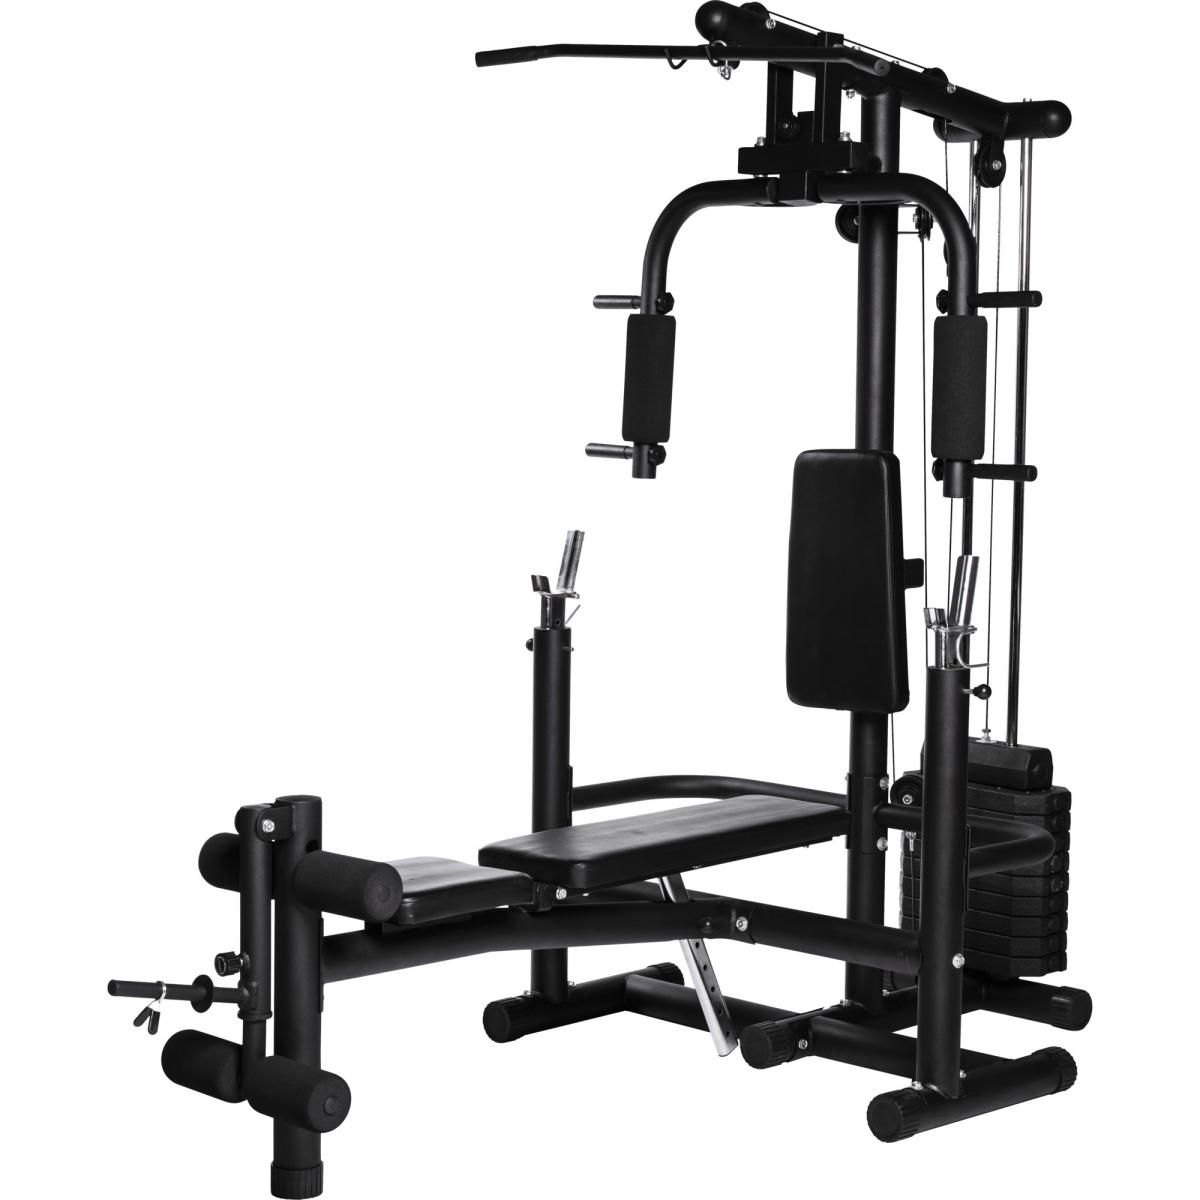 Extended Home Gym schwarz